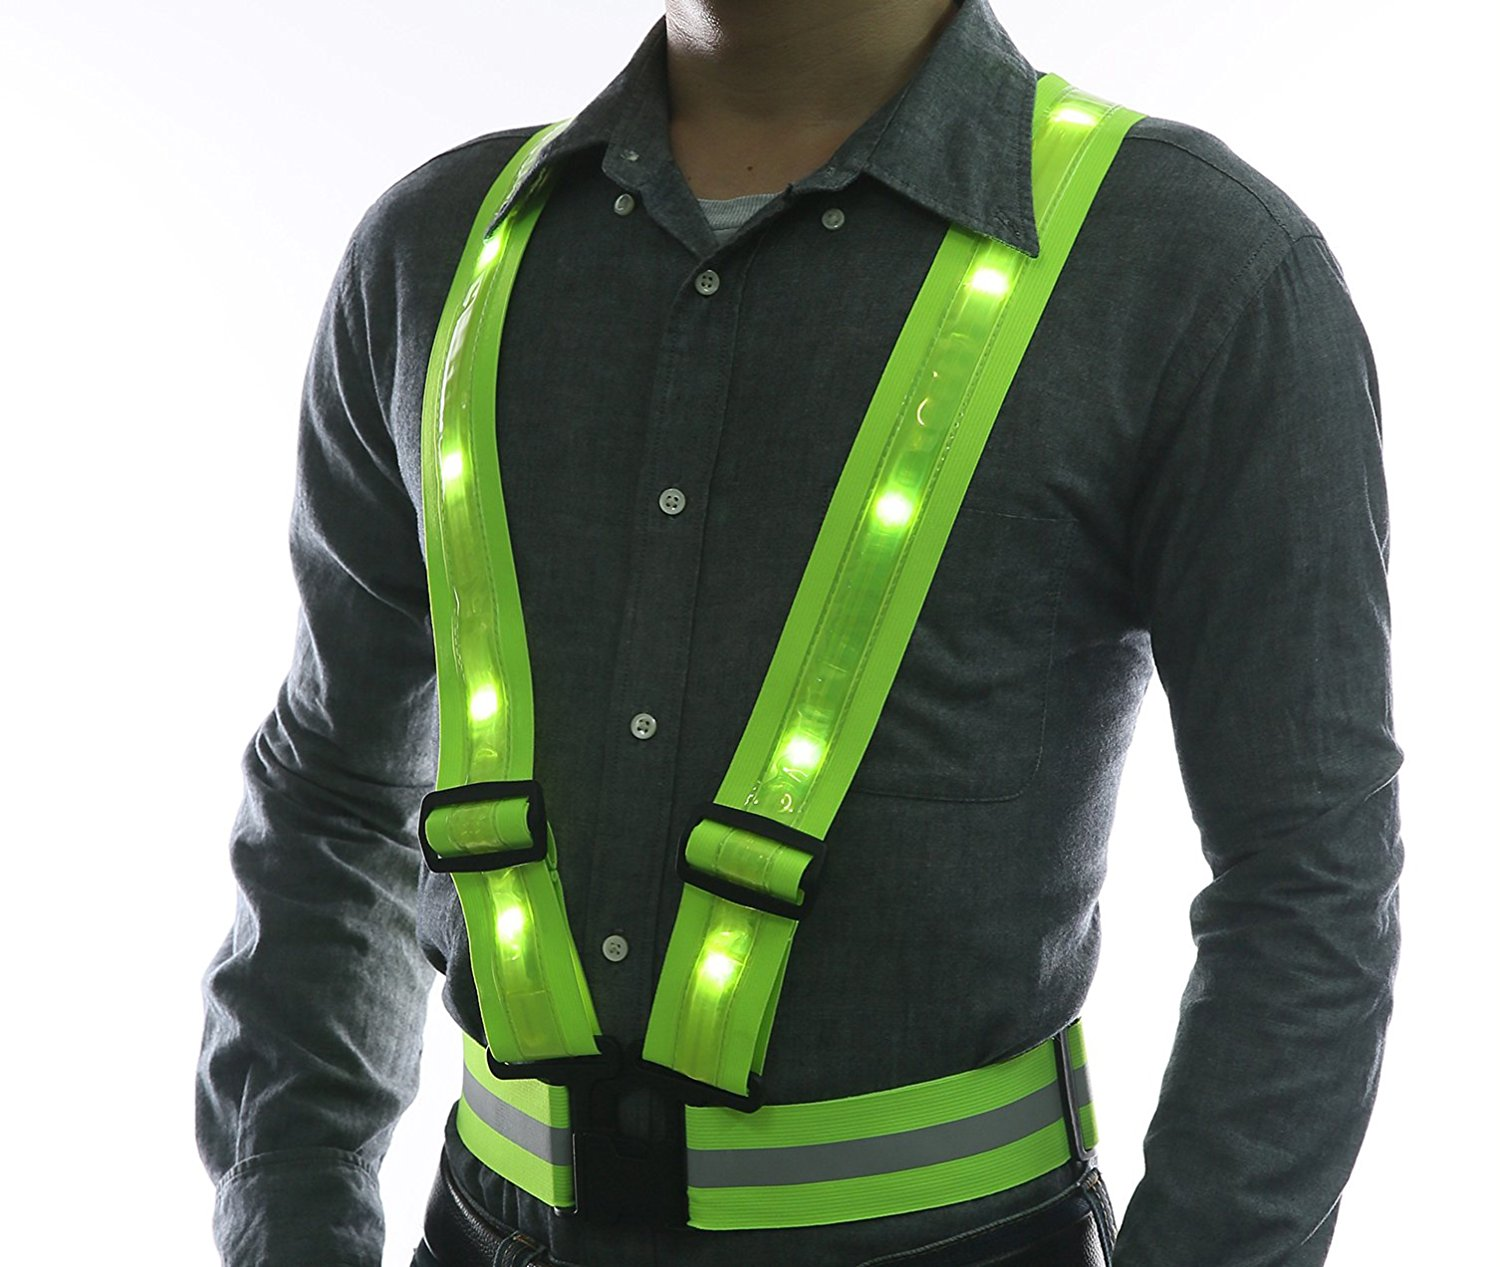 Glowseen Reflective Safety LED Vest